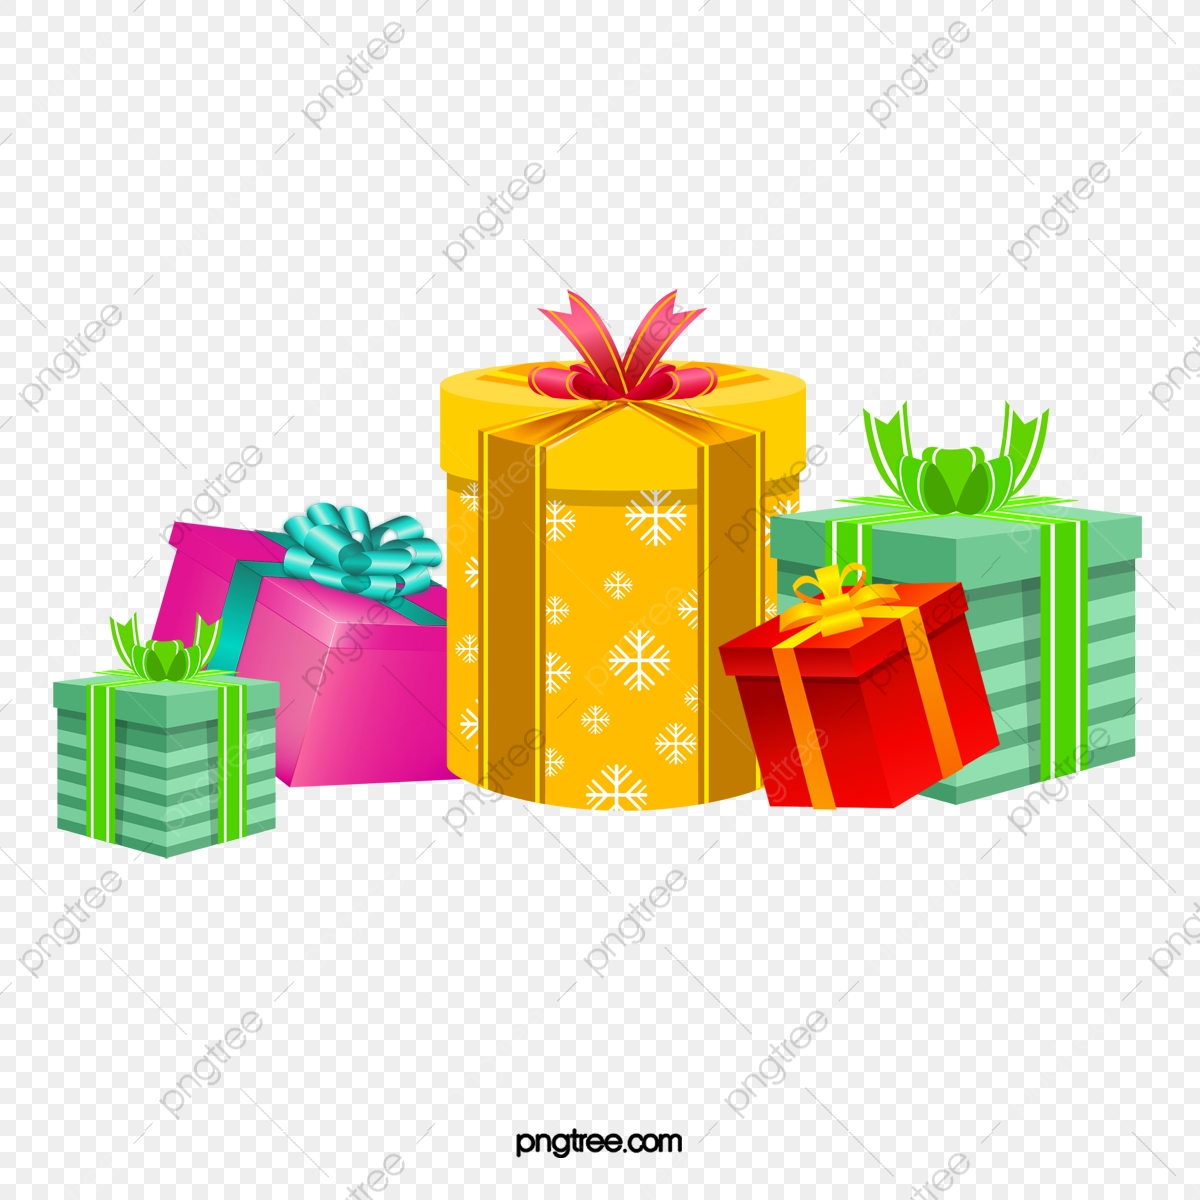 Gift Box Png Images Vector And Psd Files Free Download On Pngtree